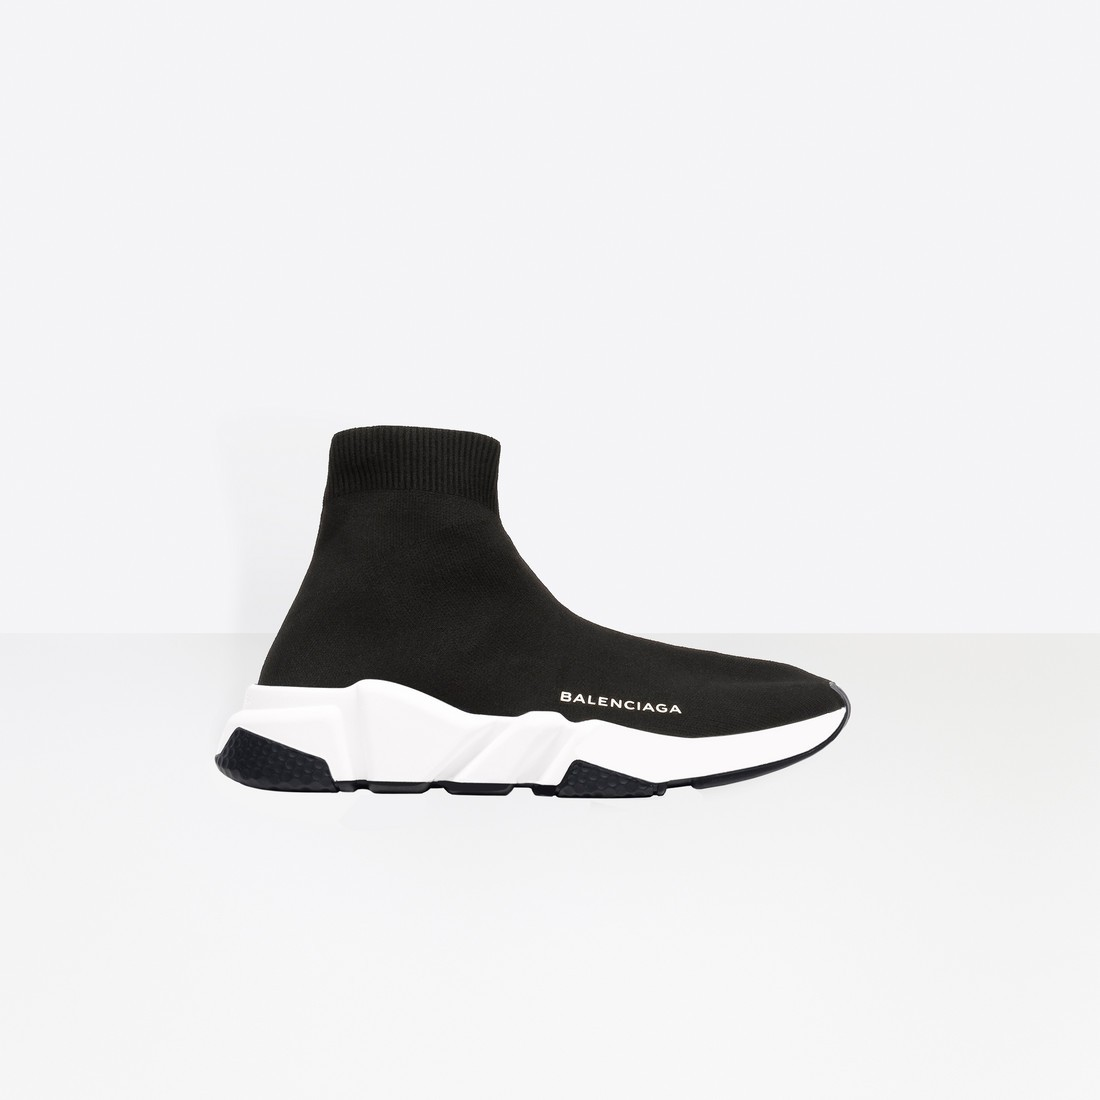 Balenciaga Femme Speed Trainers with Blanche and Noir textured sole Noir 477289W05G01000